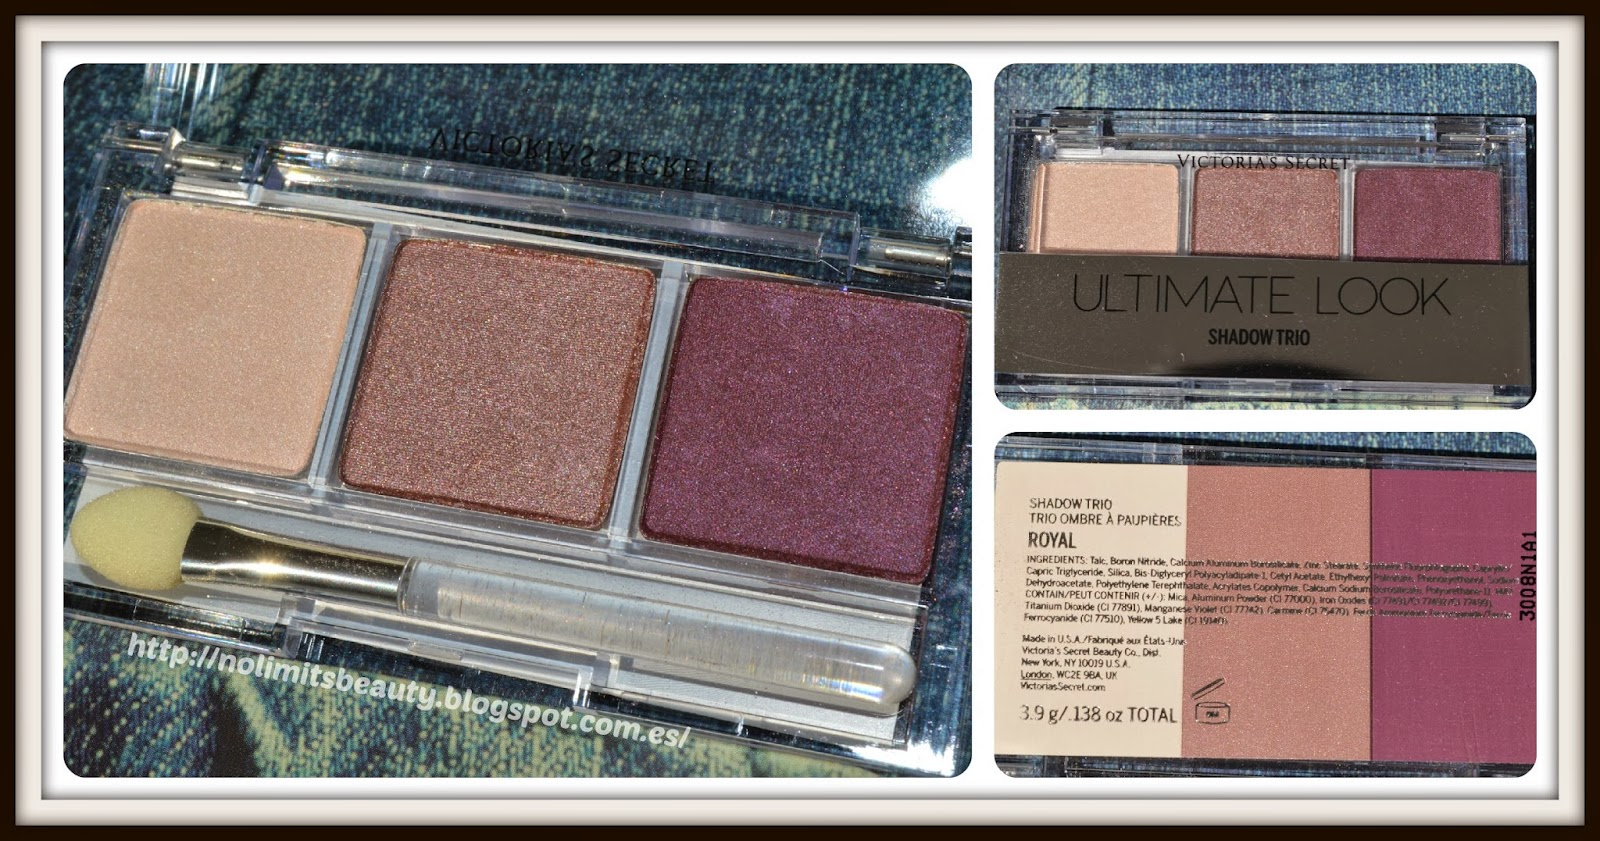 Victoria's Secret Ultimate Look - Royal Trio